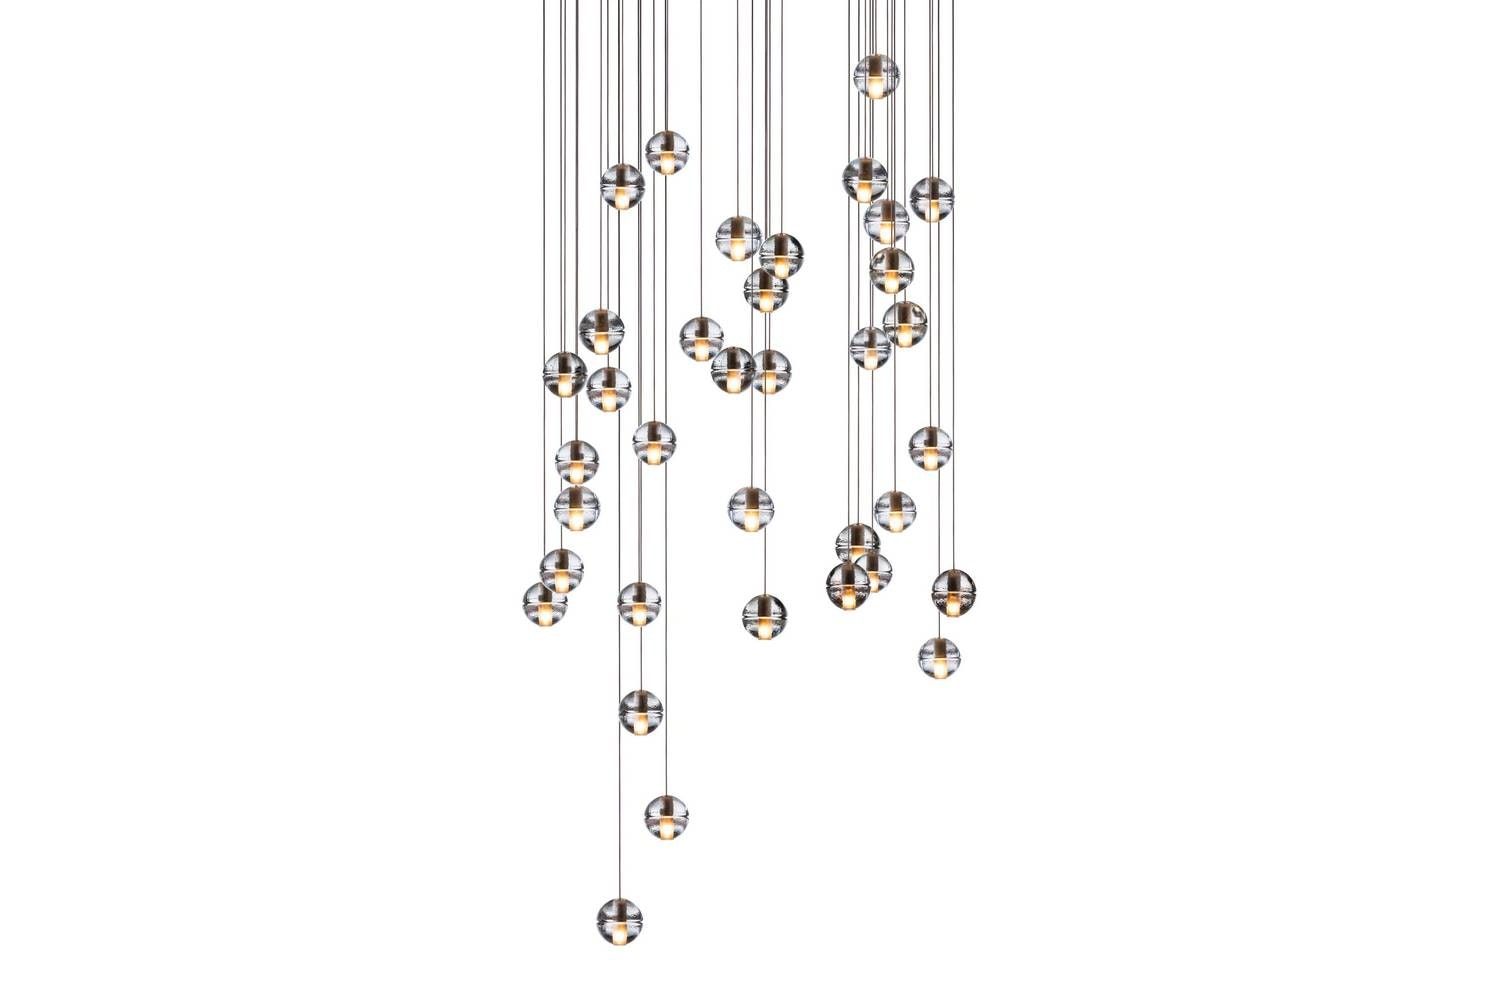 14.36 Standard Suspension Lamp by Omer Arbel for Bocci